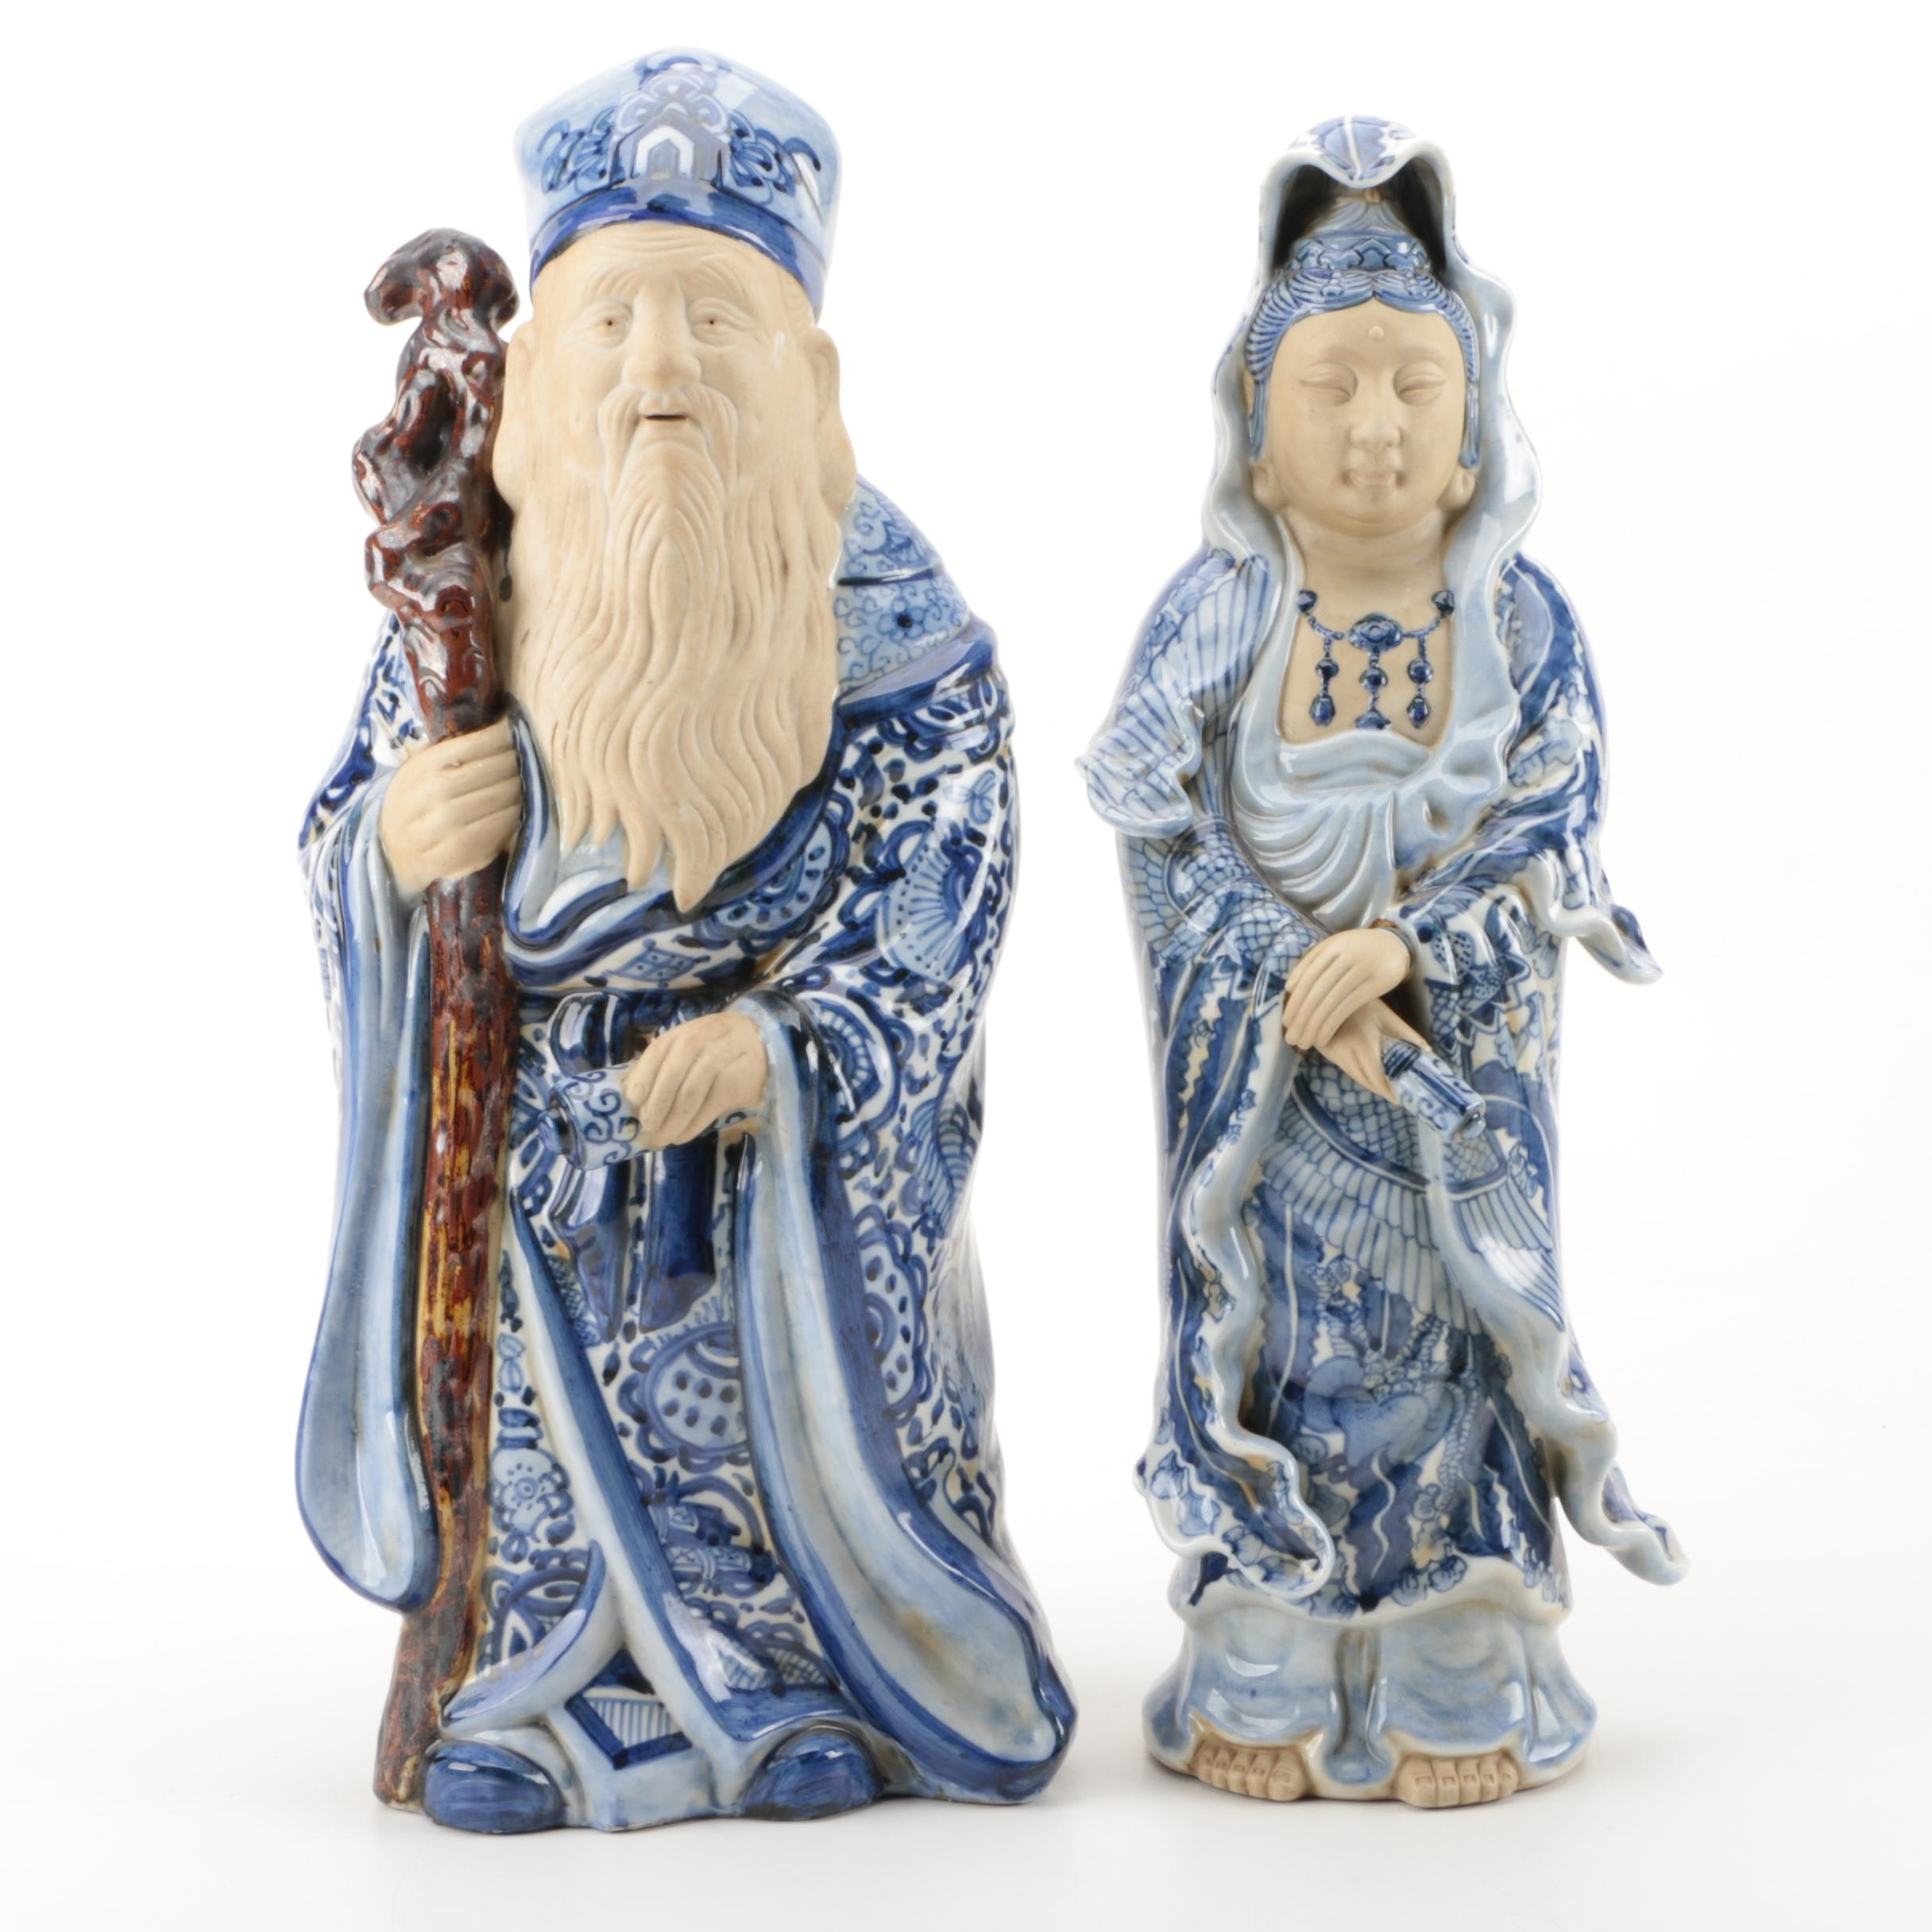 Ceramic Blue and White Asian Inspired Figurines